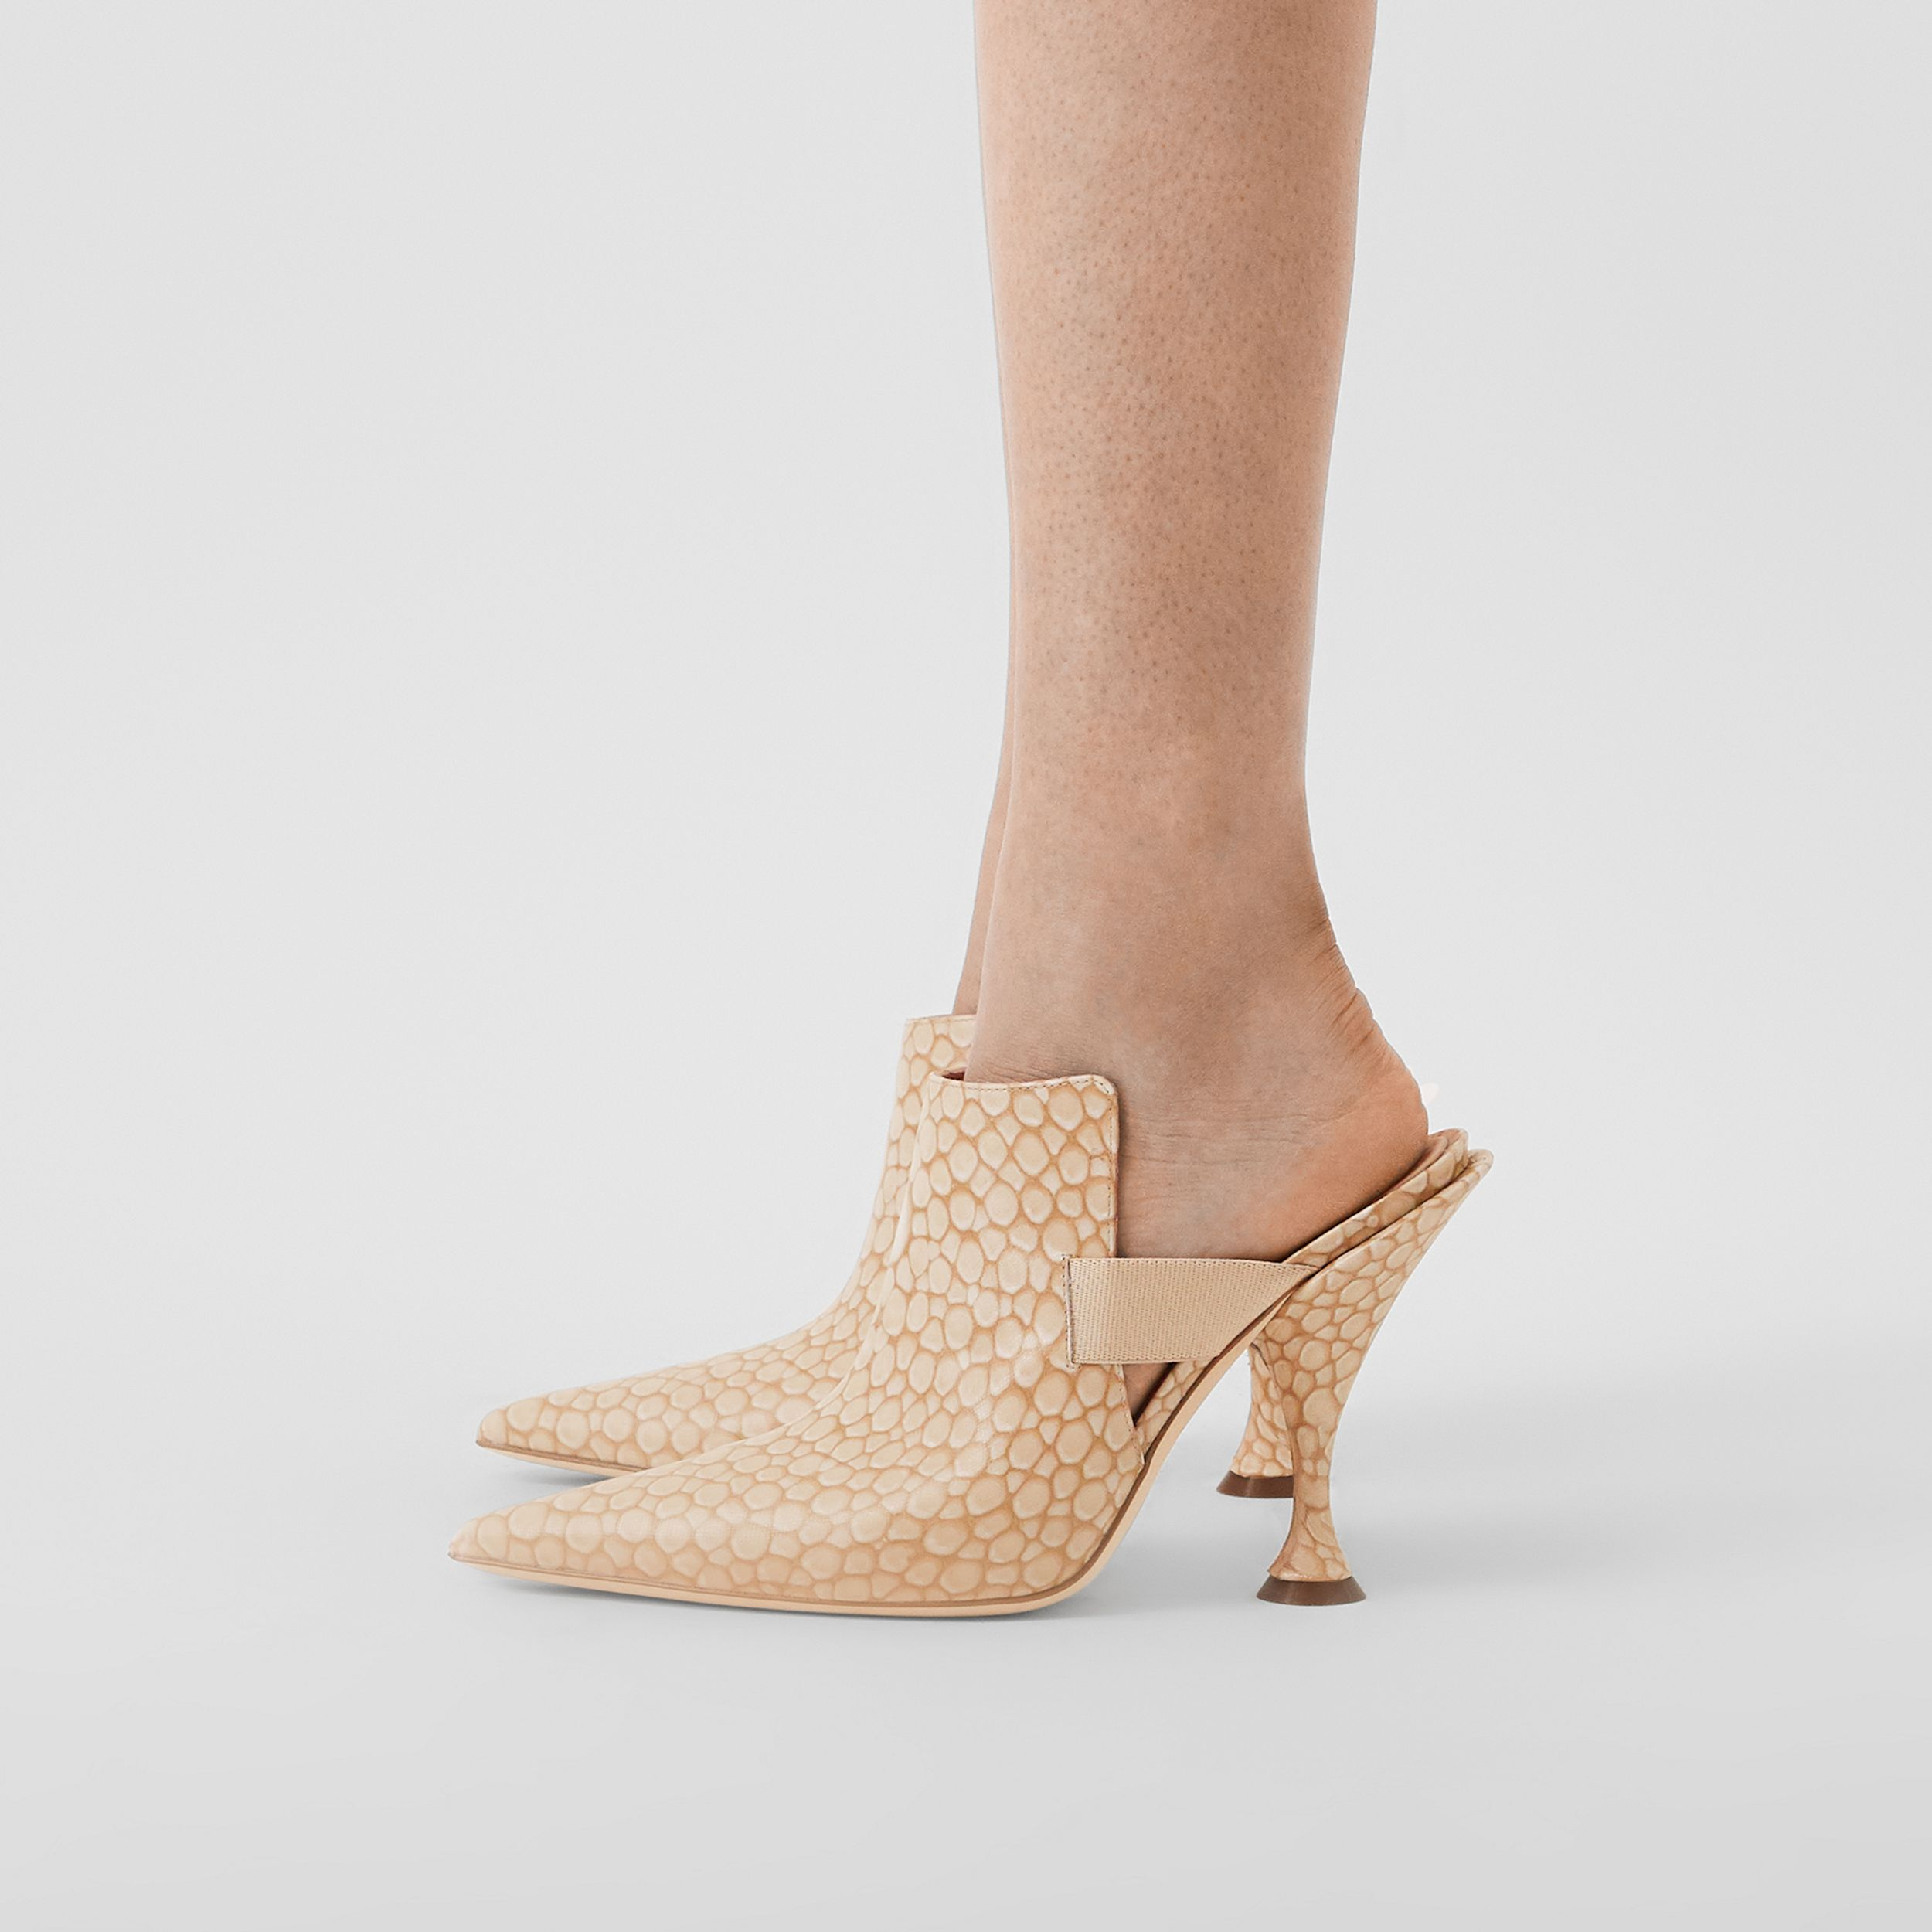 Stingray Print Leather Point-toe Mules in Light Sand - Women | Burberry - 3